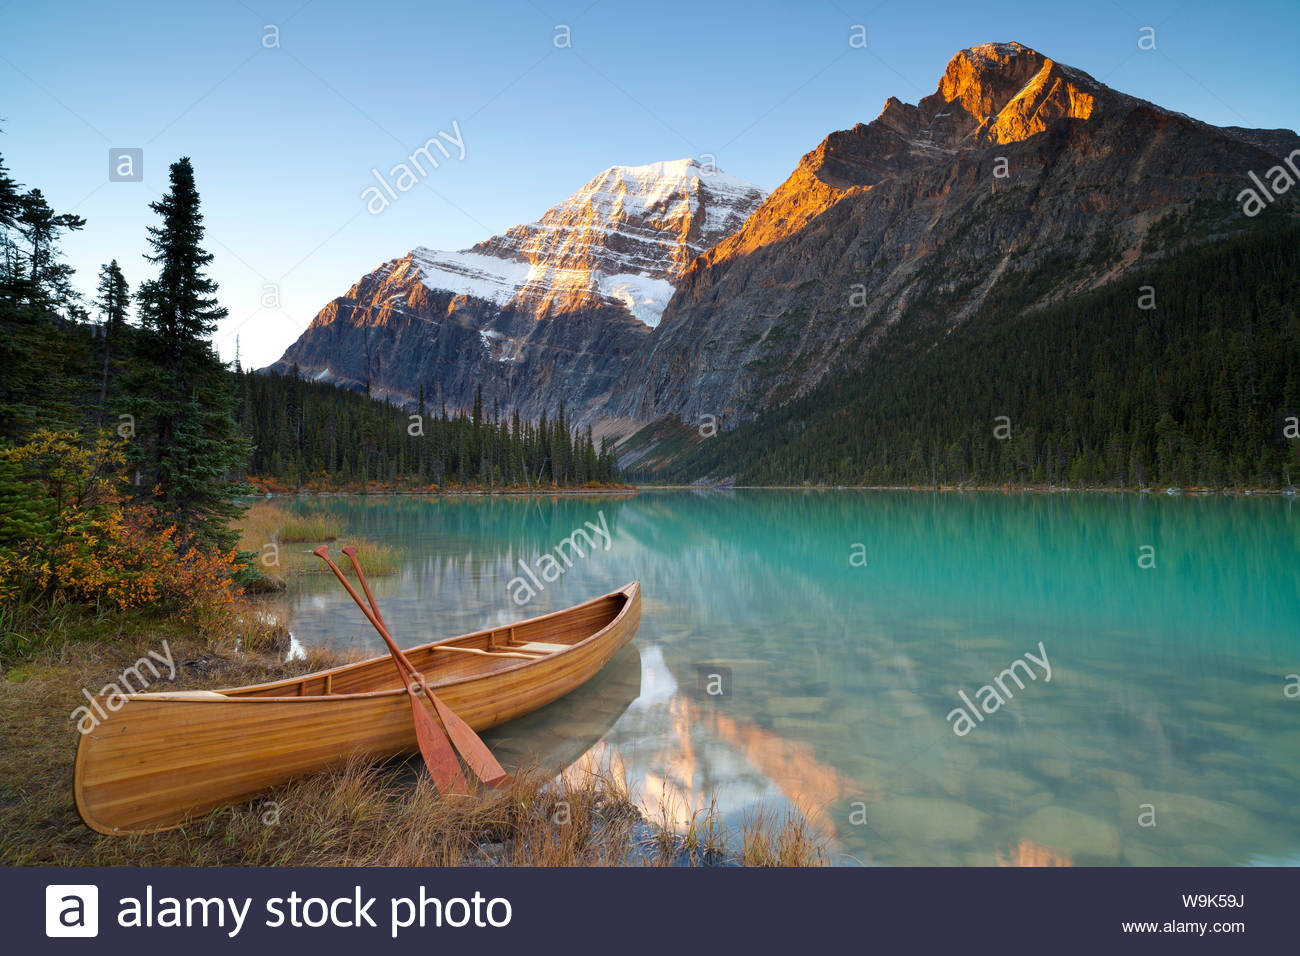 Canoe at Cavell Lake with Mount Edith Cavell in the background 1300x956